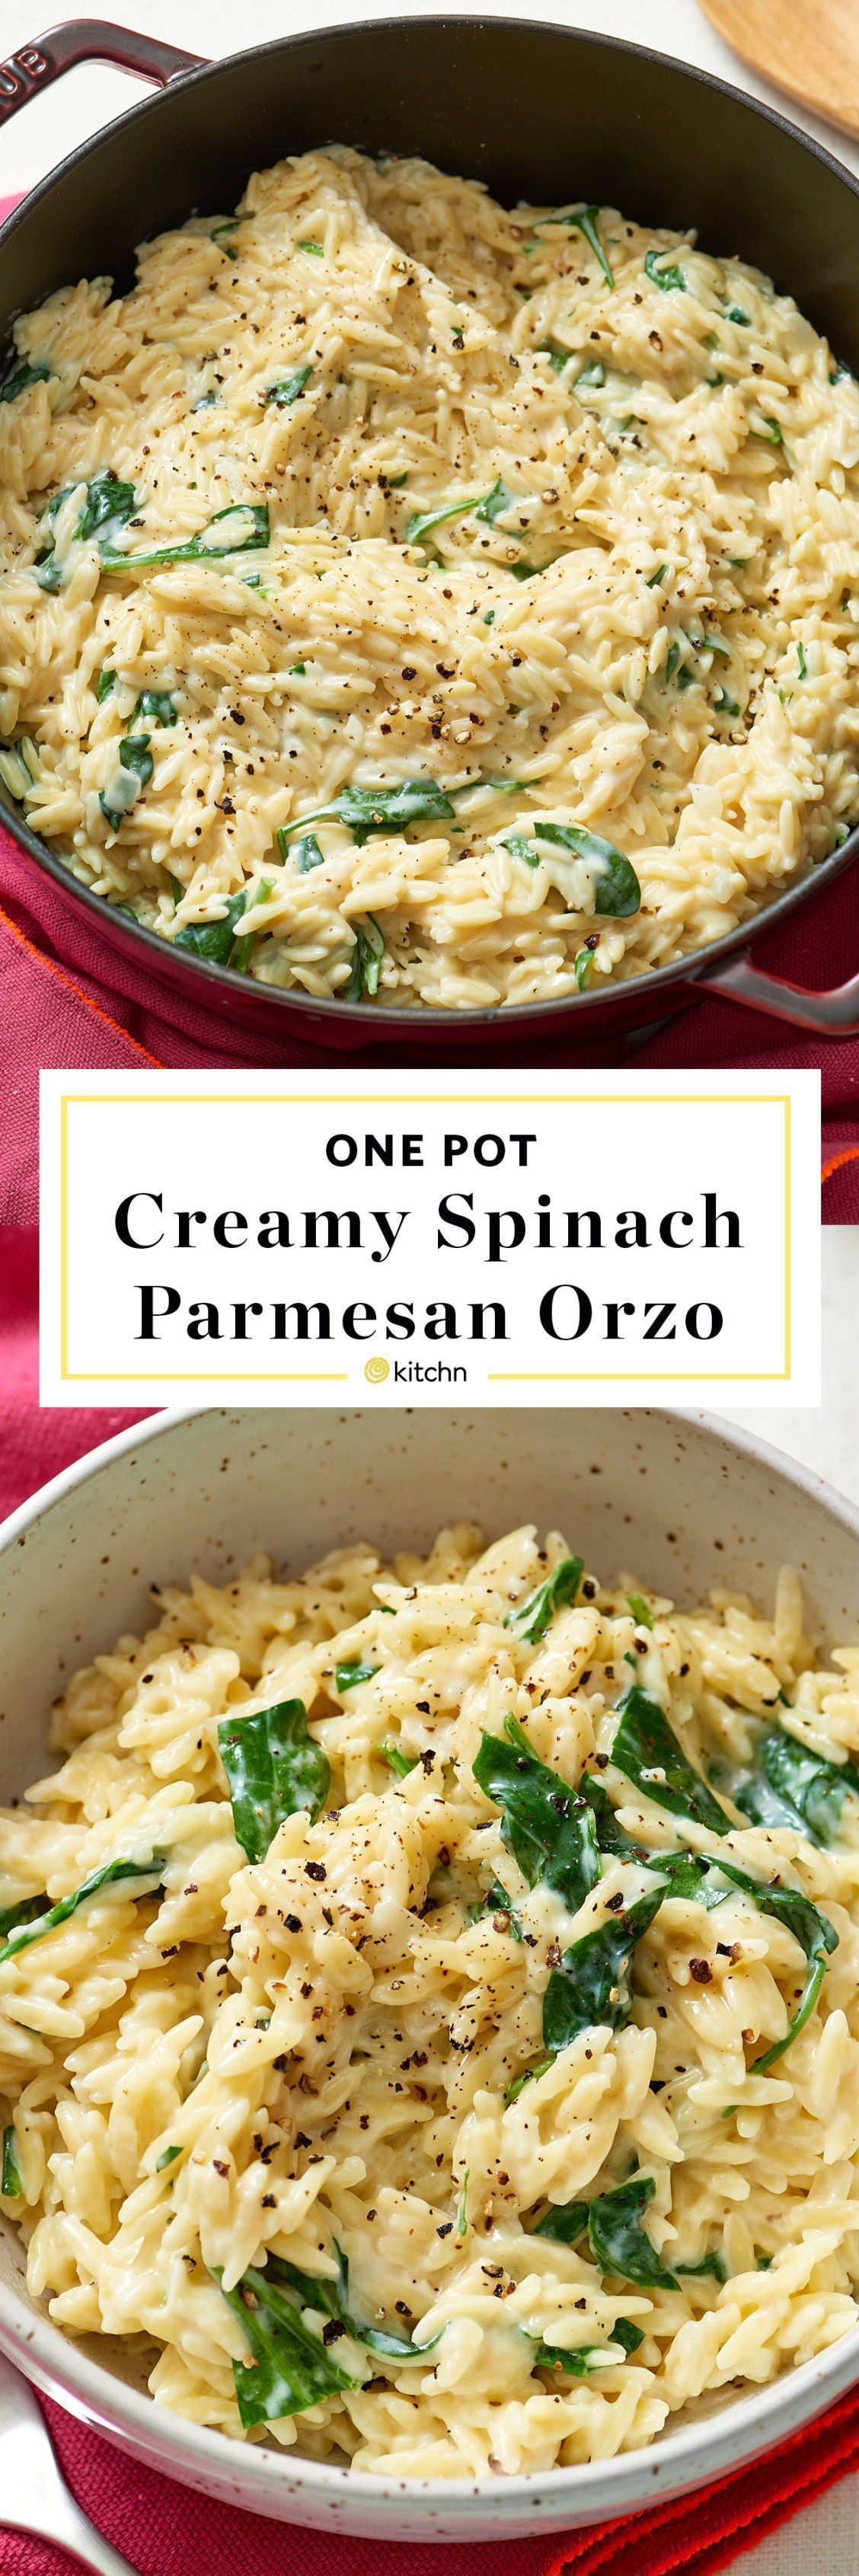 Parmesan Orzo One Pot, Pan, or Dish Creamy Spinach, Parmesan & Orzo Pasta Recipe. Need recipes and ideas for easy weeknight dinners and meals? Vegetarian and perfect for a side dish or a main dish. To make this modern comfort food, you'll need: olive oil, onion, garlic, orzo, chicken or veggie/vegetable broth, milk, baby spinach or ot...